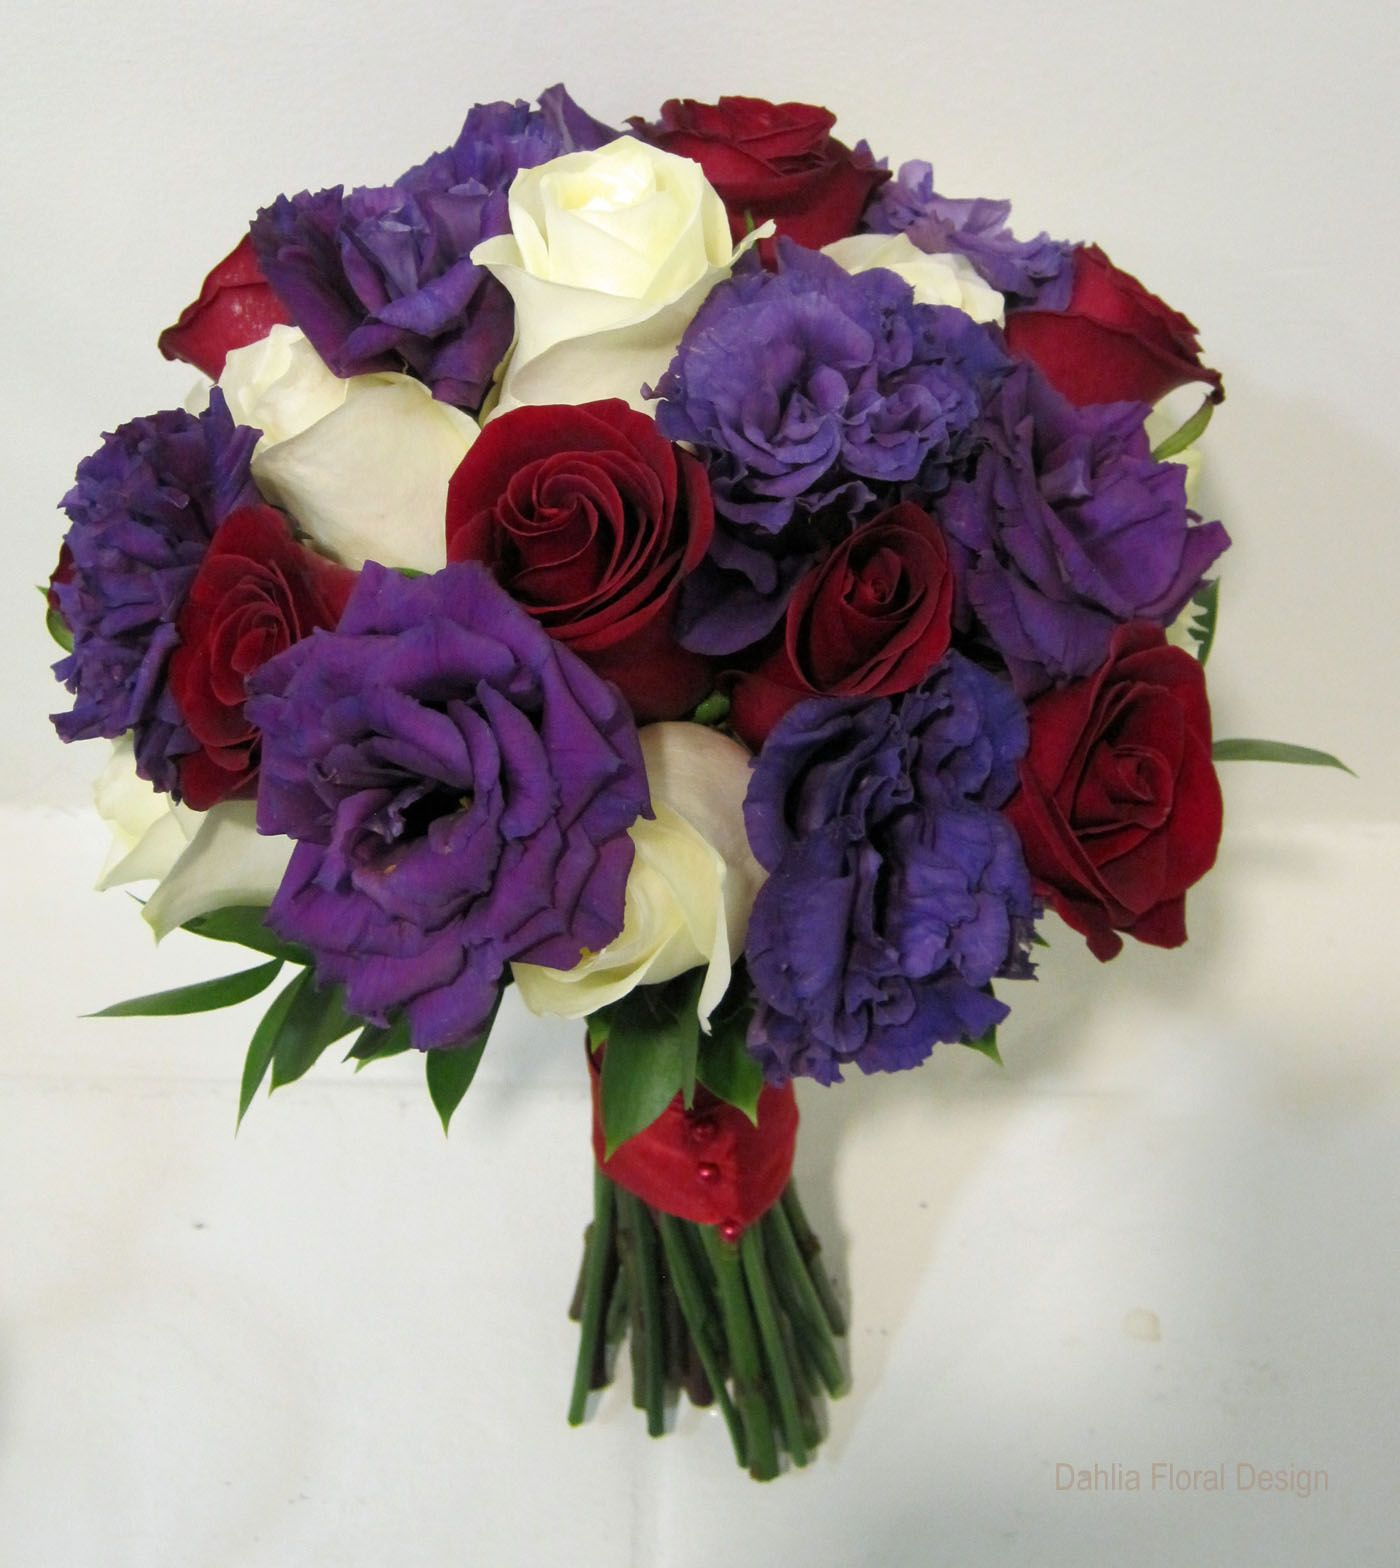 Rich Jewel Tones Of Red And Purple Are Accented With Ivory In This